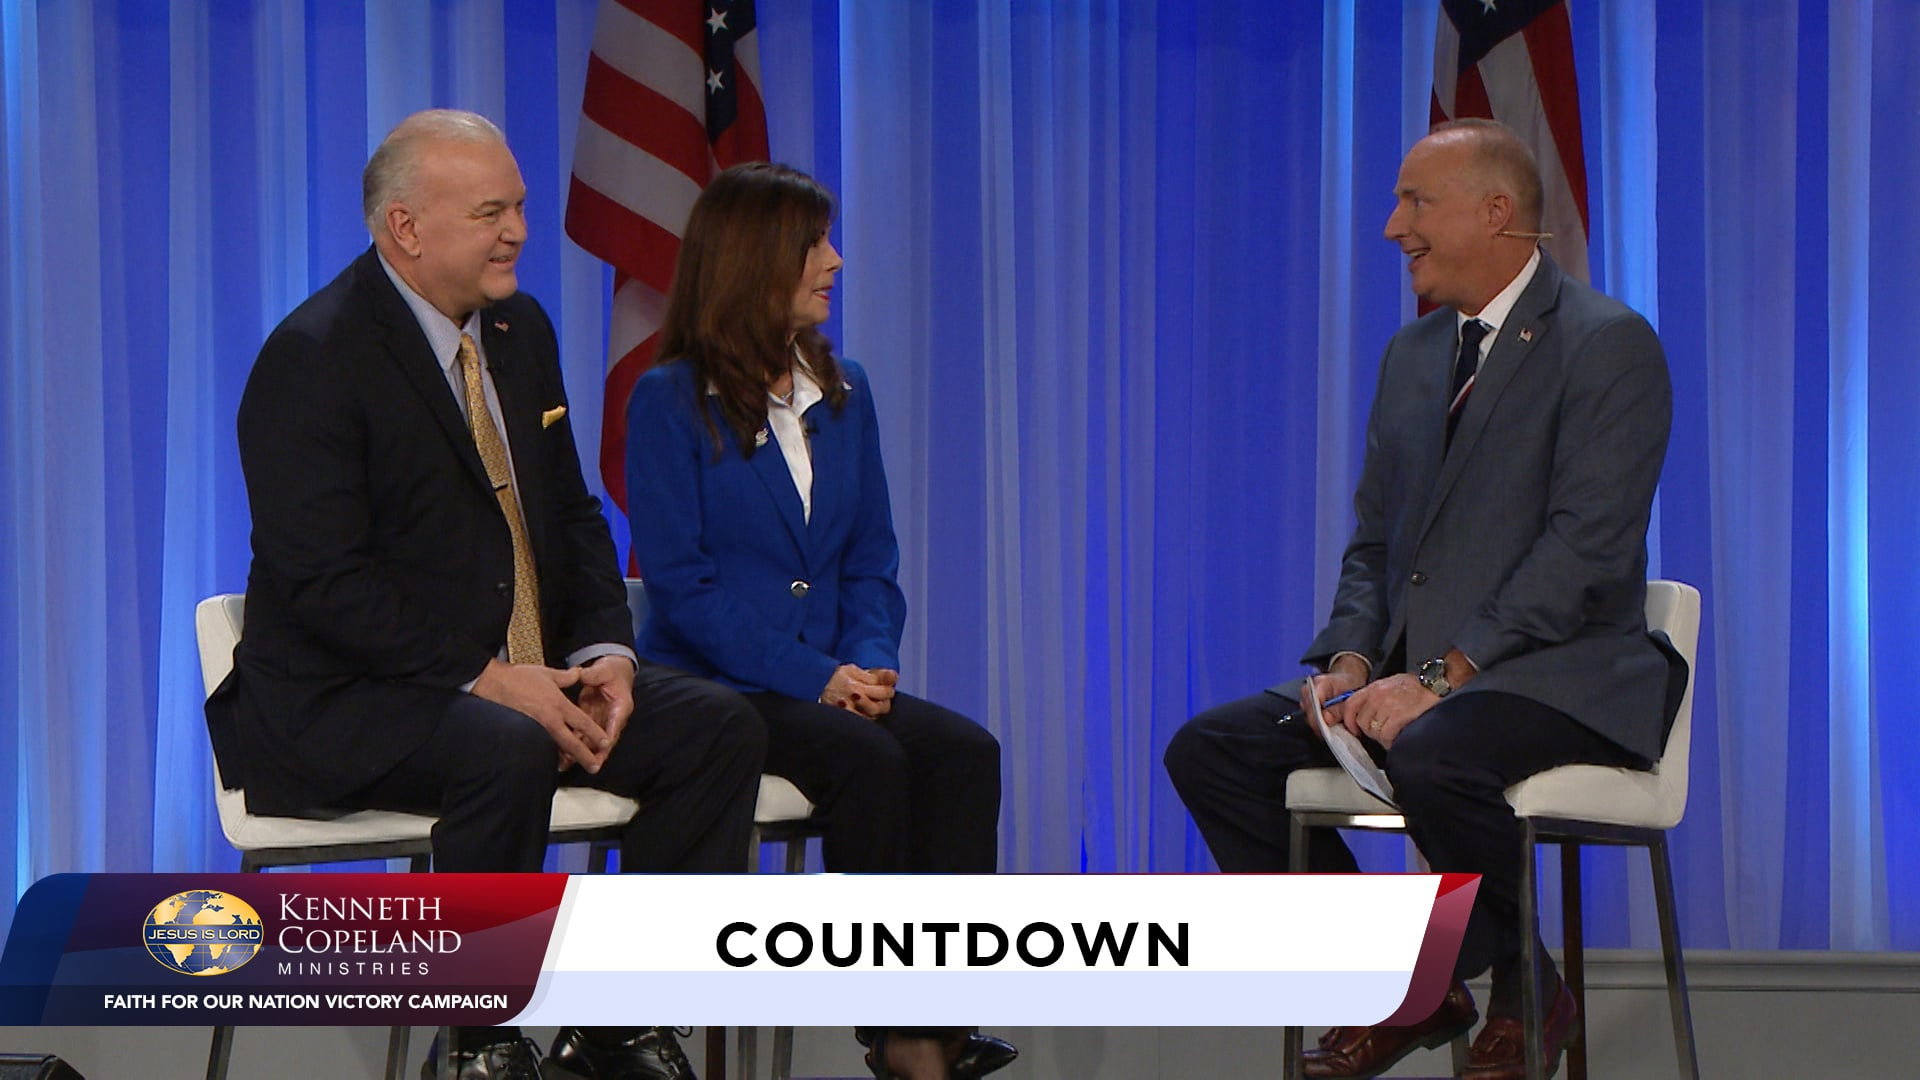 Join Tim Fox, with Kiley Kjellstrom, at the 2020 Faith for Our Nation VICTORY Campaign, as she shares her powerful healing testimony. Dr. Tony Erby and student, Mara Jade Pope, give KCBC updates. Meet Partners, Lance and Barbara McCune. She is a KCM staff member and he is a liaison for the Church in political arenas.